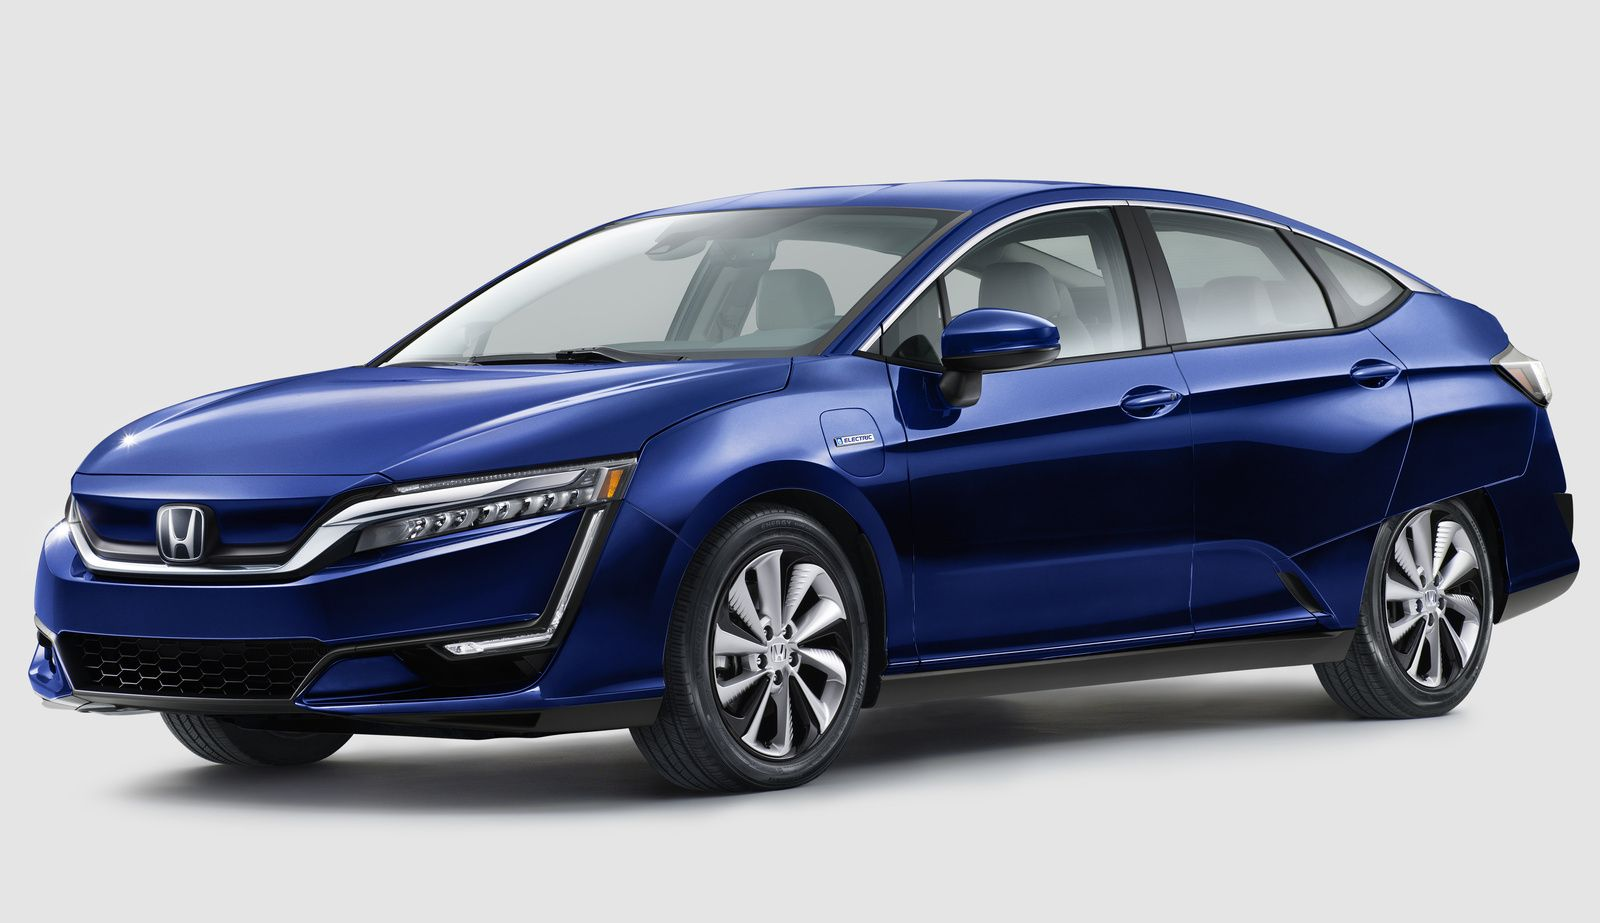 2017 Honda Clarity Electric Chevy volt, Honda electric